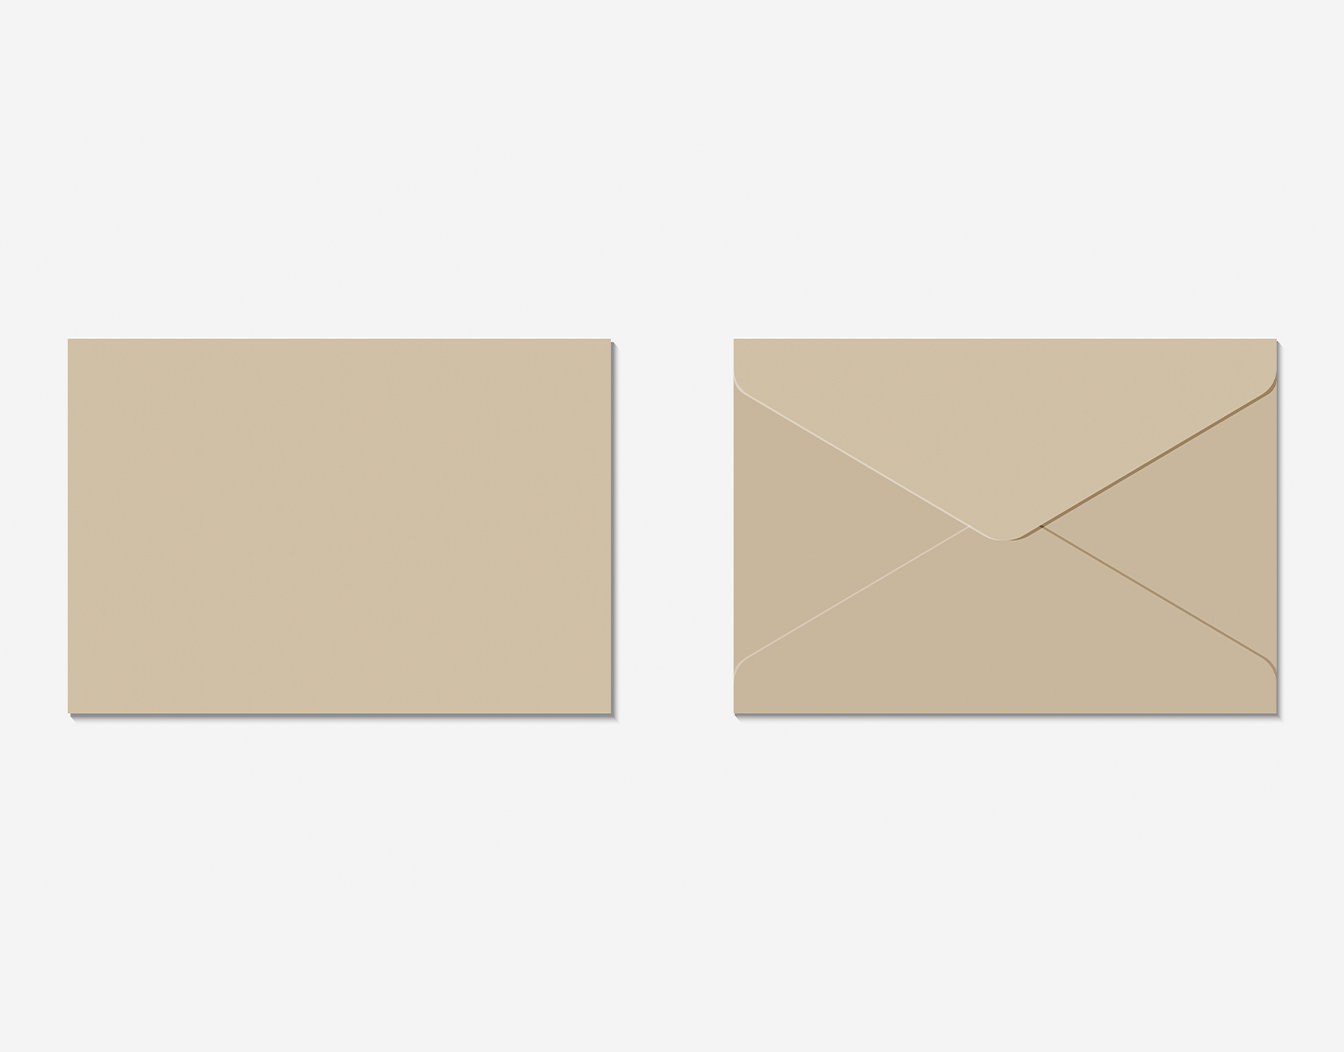 Two C6 envelopes